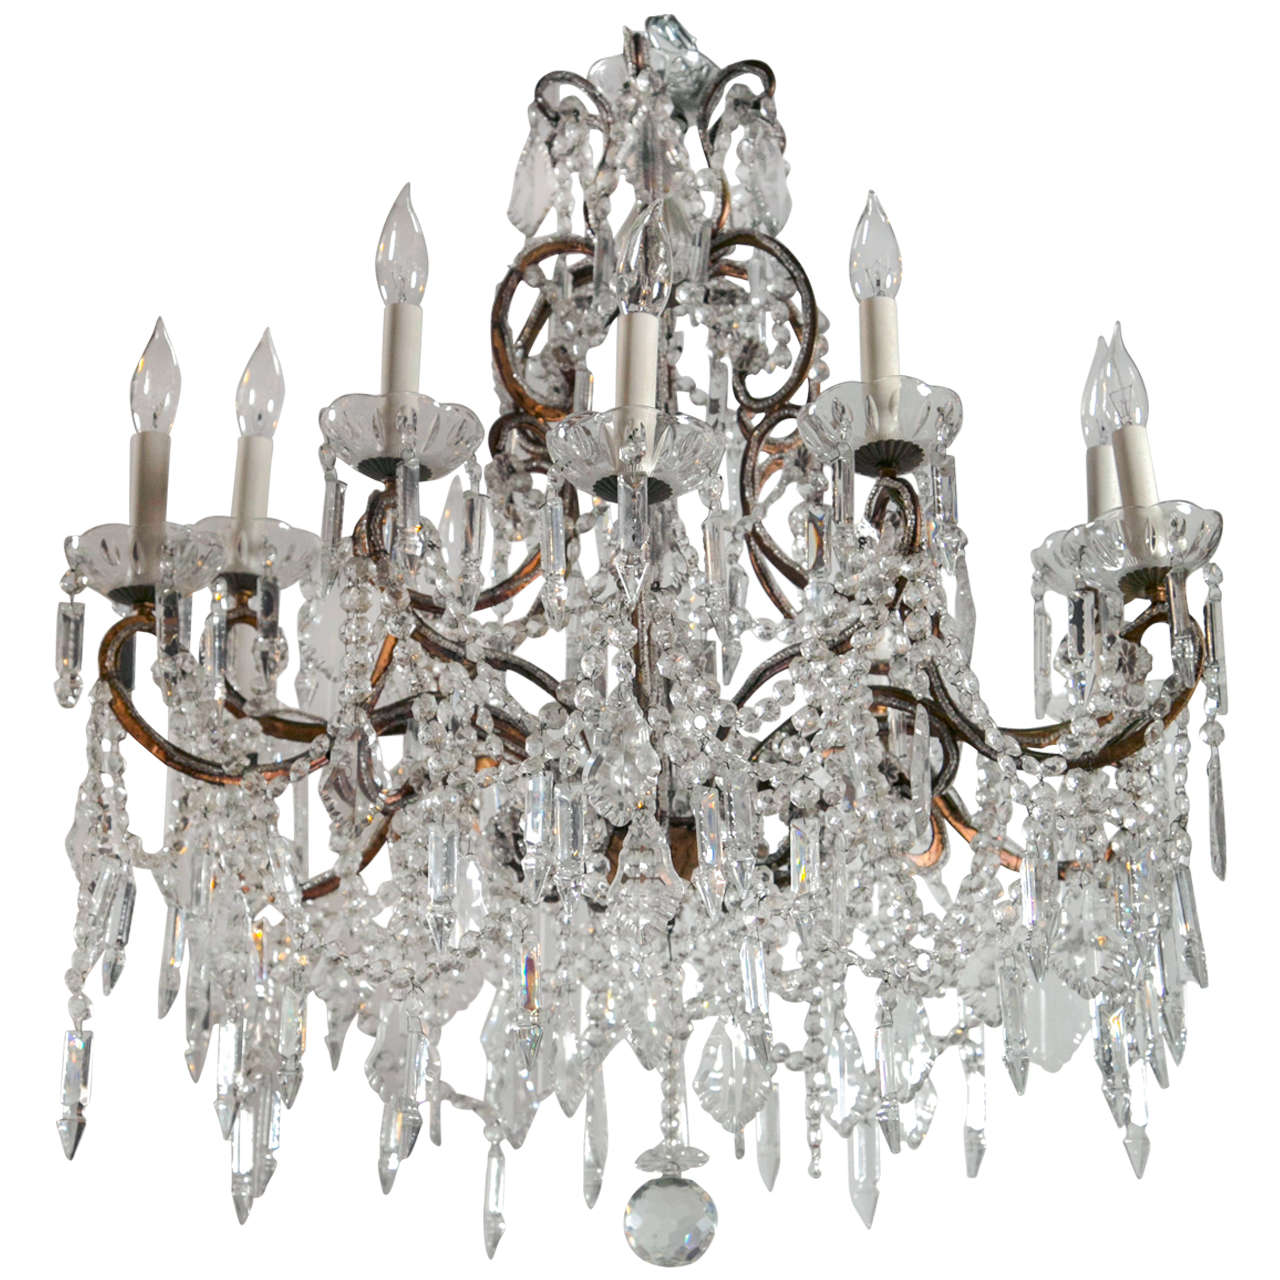 Vintage French Marie Therese Crystal Chandeliers For Sale - Vintage French Marie Therese Crystal Chandeliers At 1stdibs